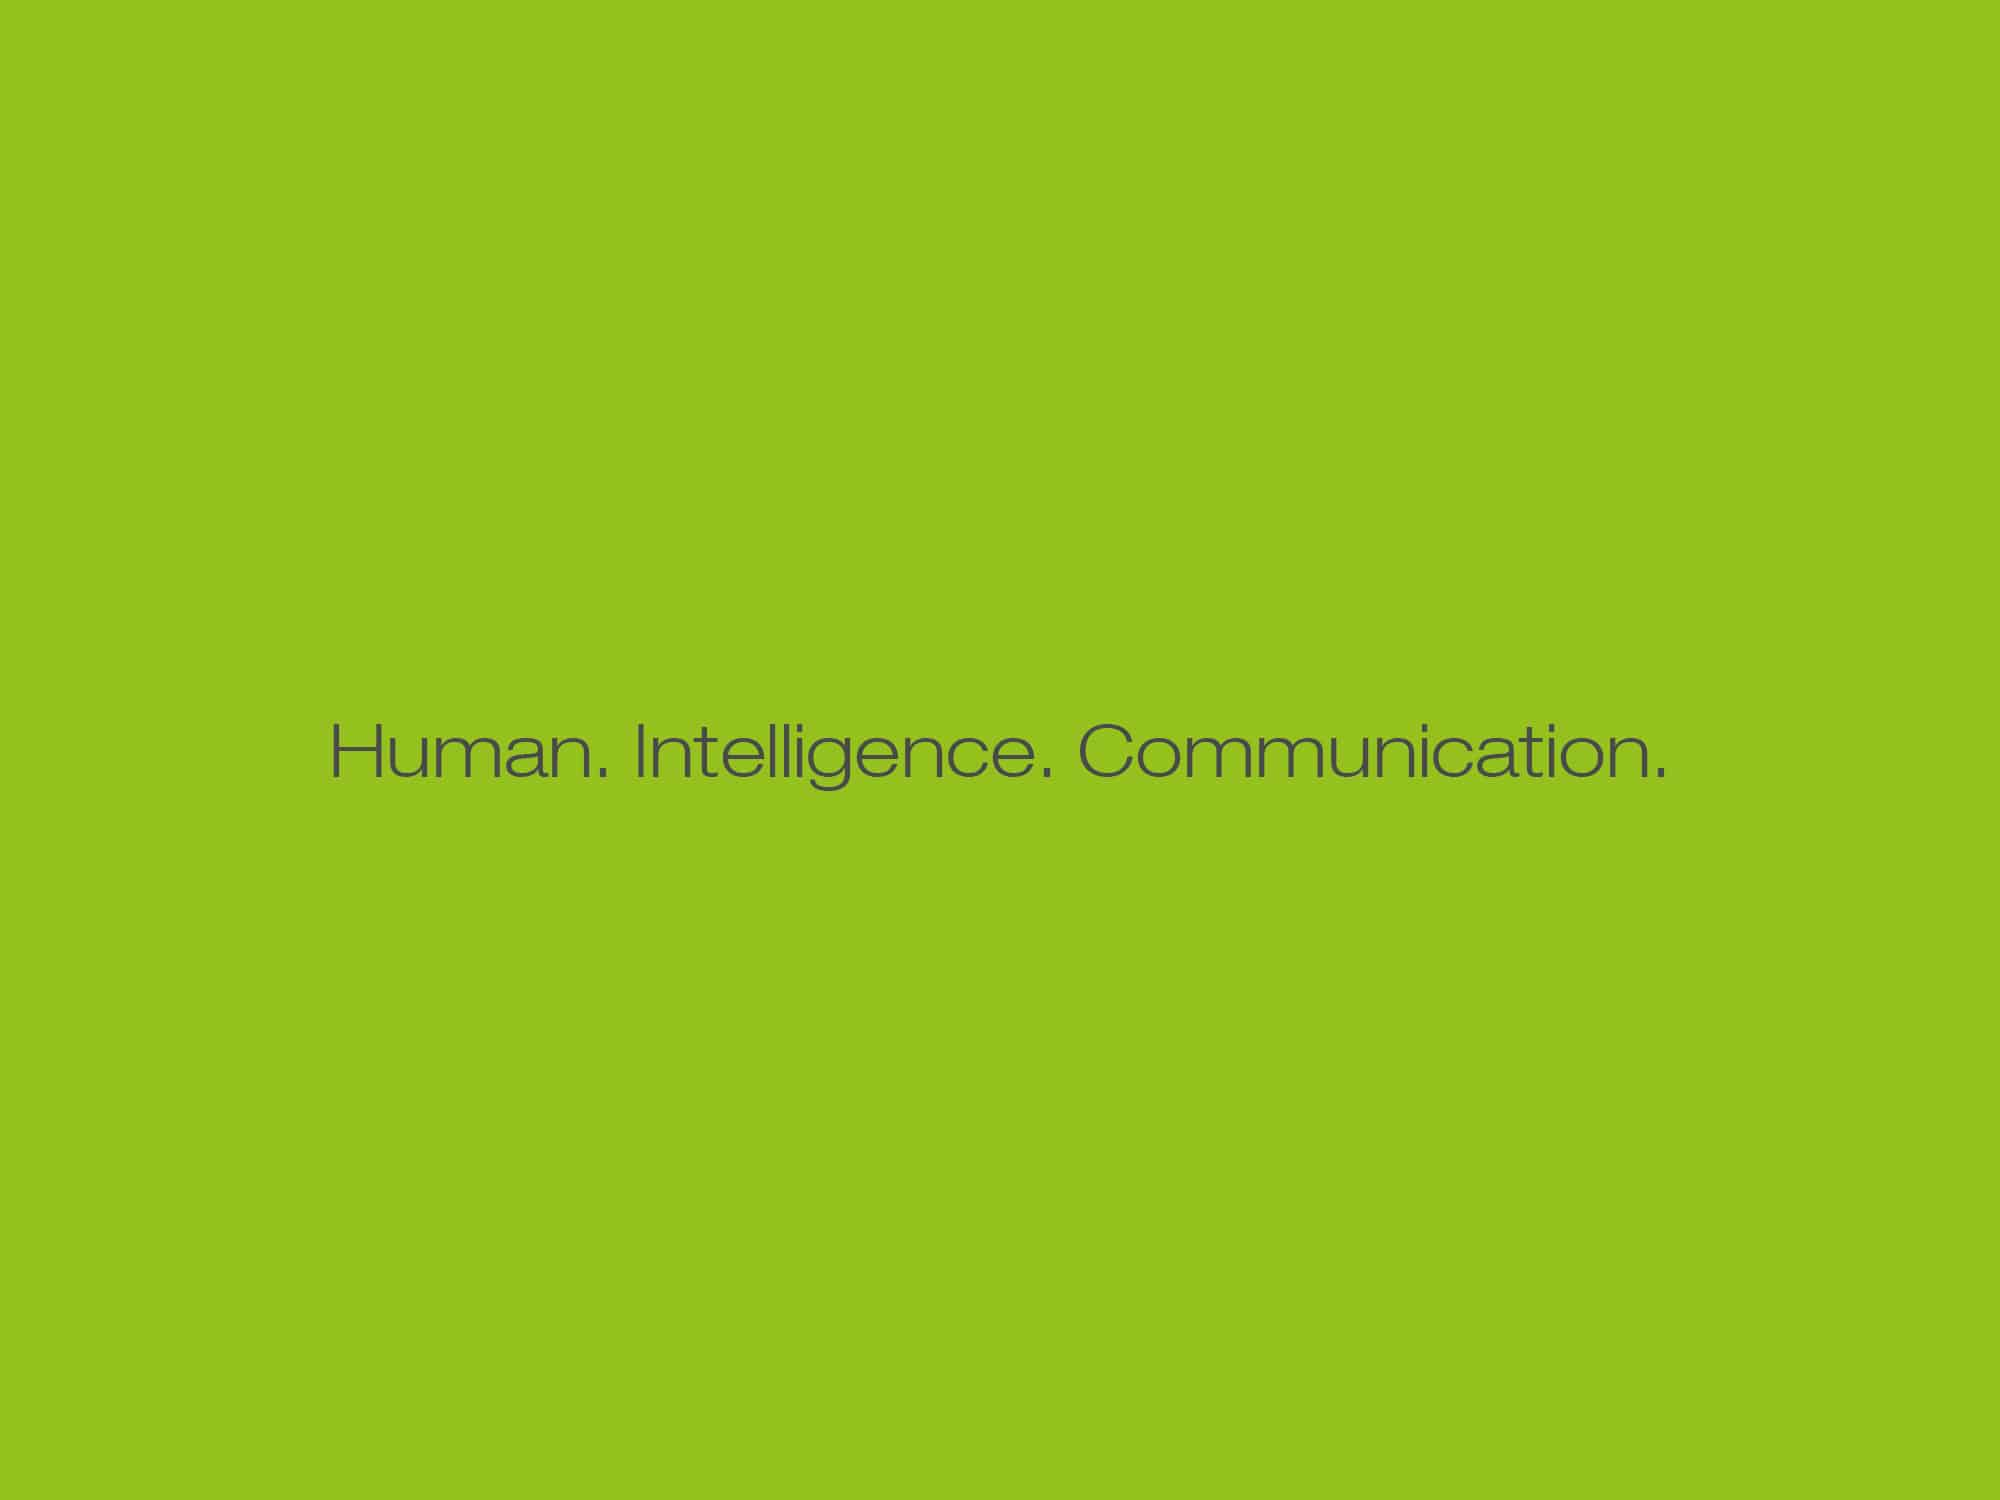 Human. Intelligence. Communication.